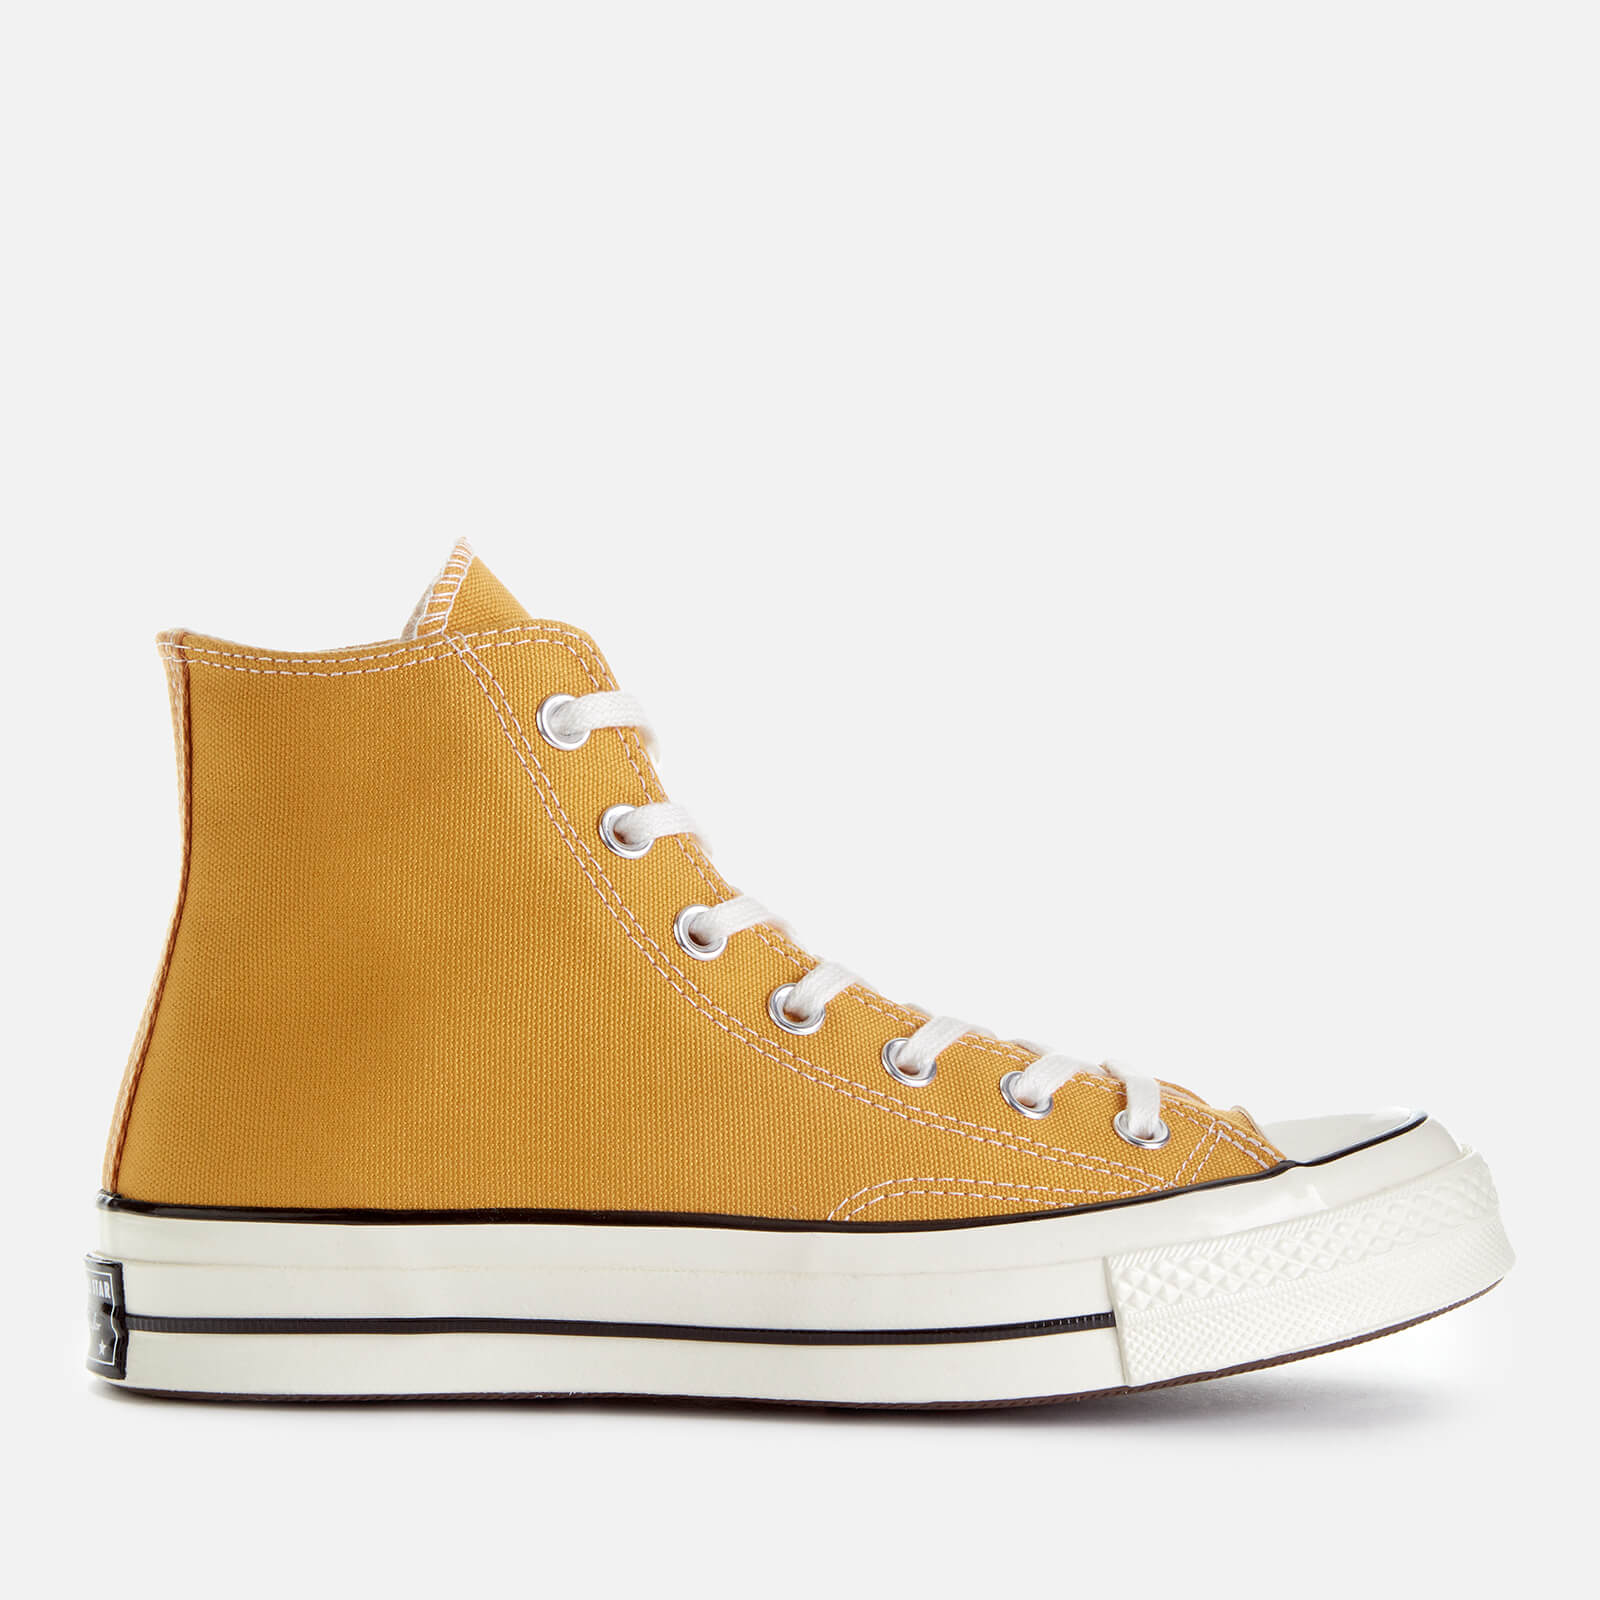 aa9ebe49e55da9 Converse Chuck 70 Hi-Top Trainers - Sunflower Black Egret - Free UK ...